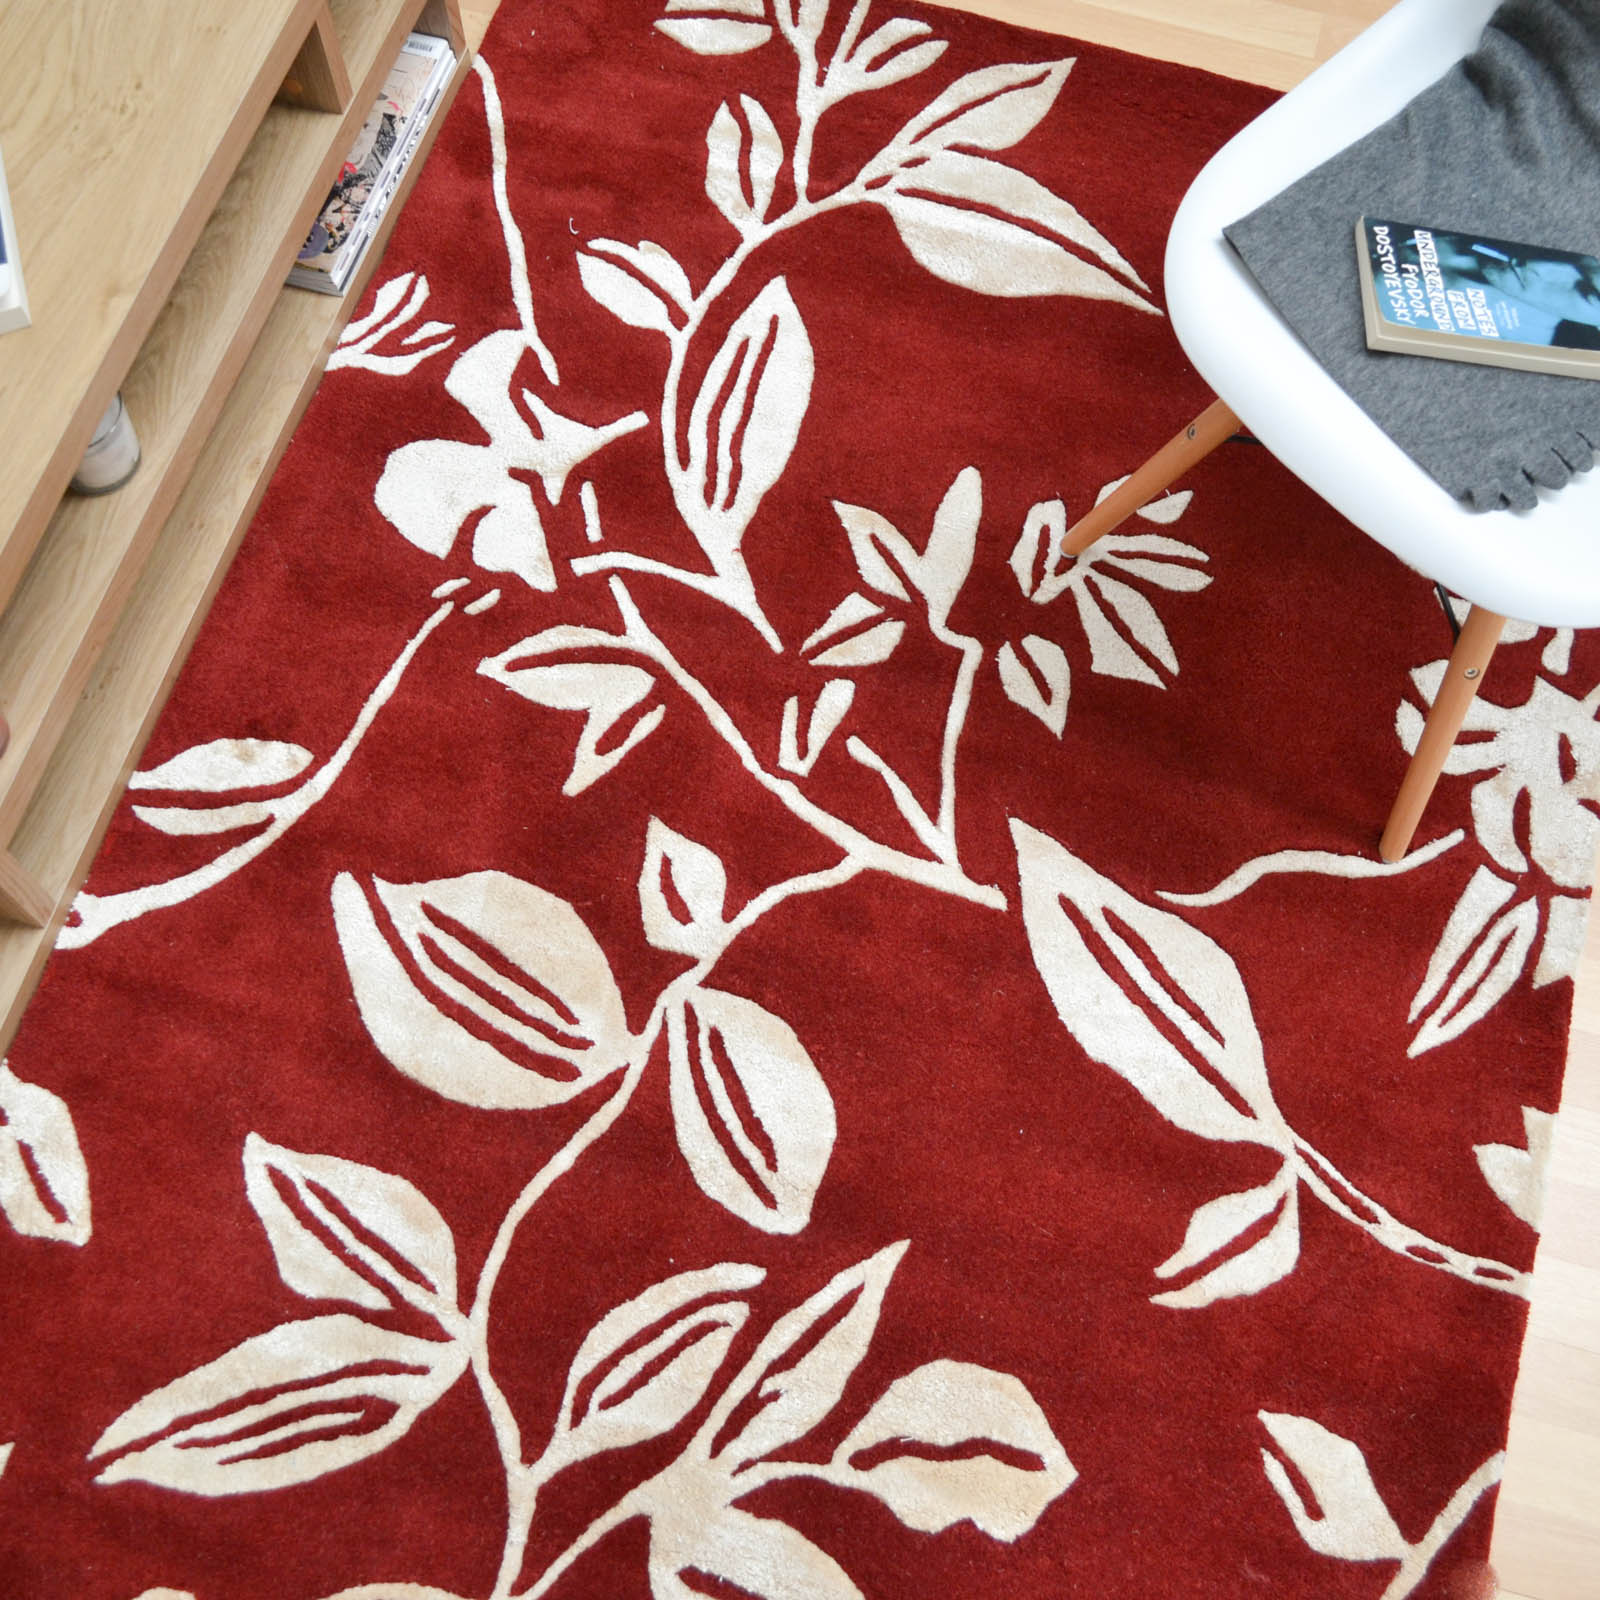 Leaf Trail Rugs in Red